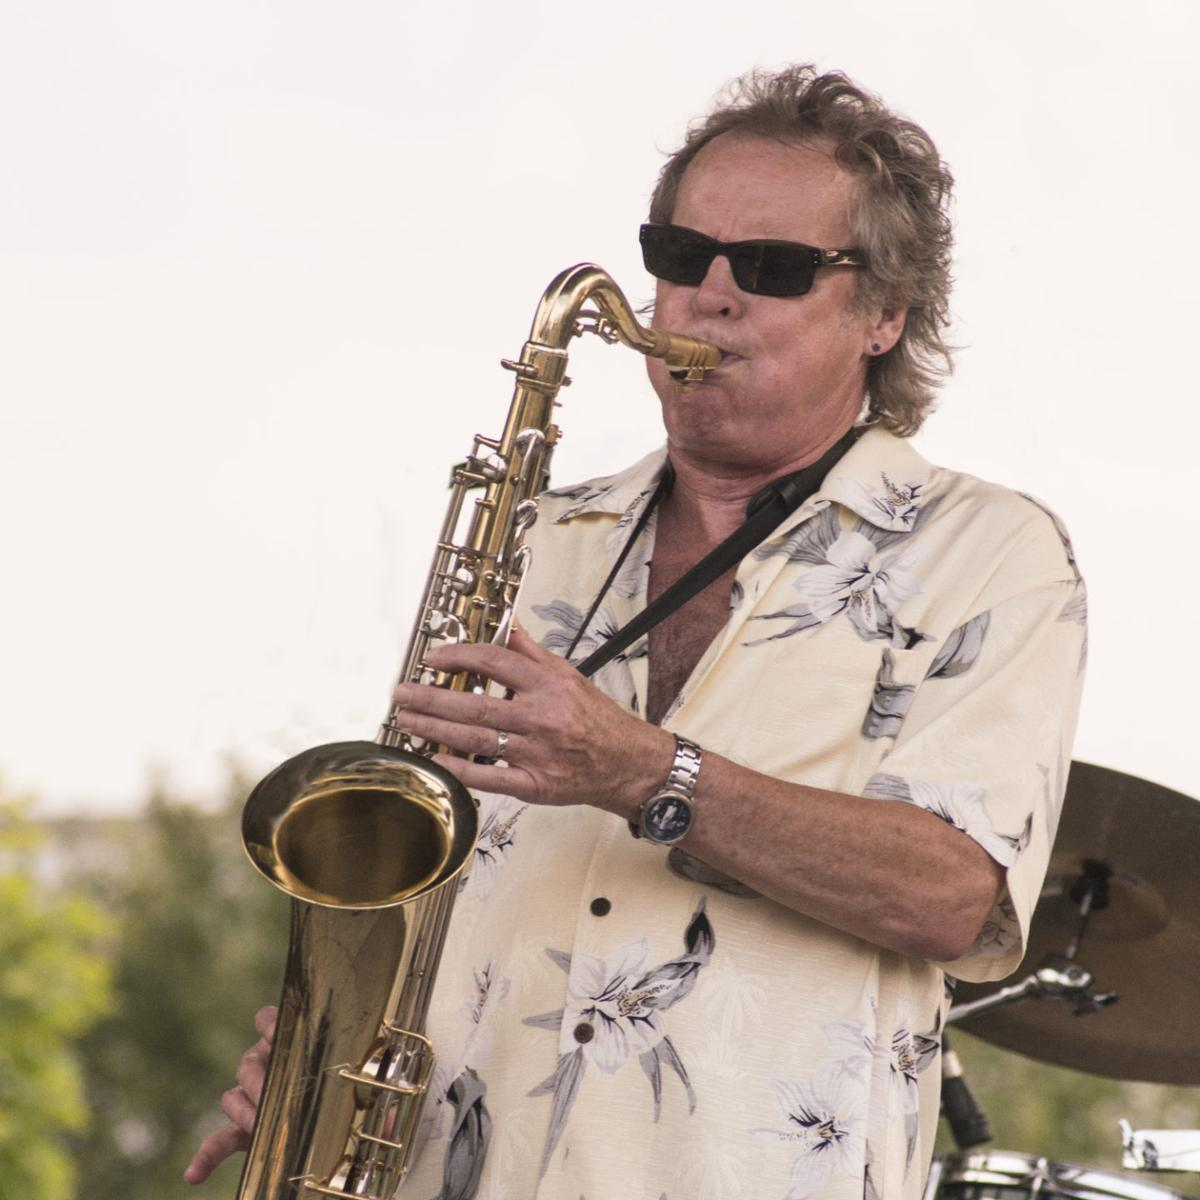 More flavor at the fair': Music shakeup benefits bands from